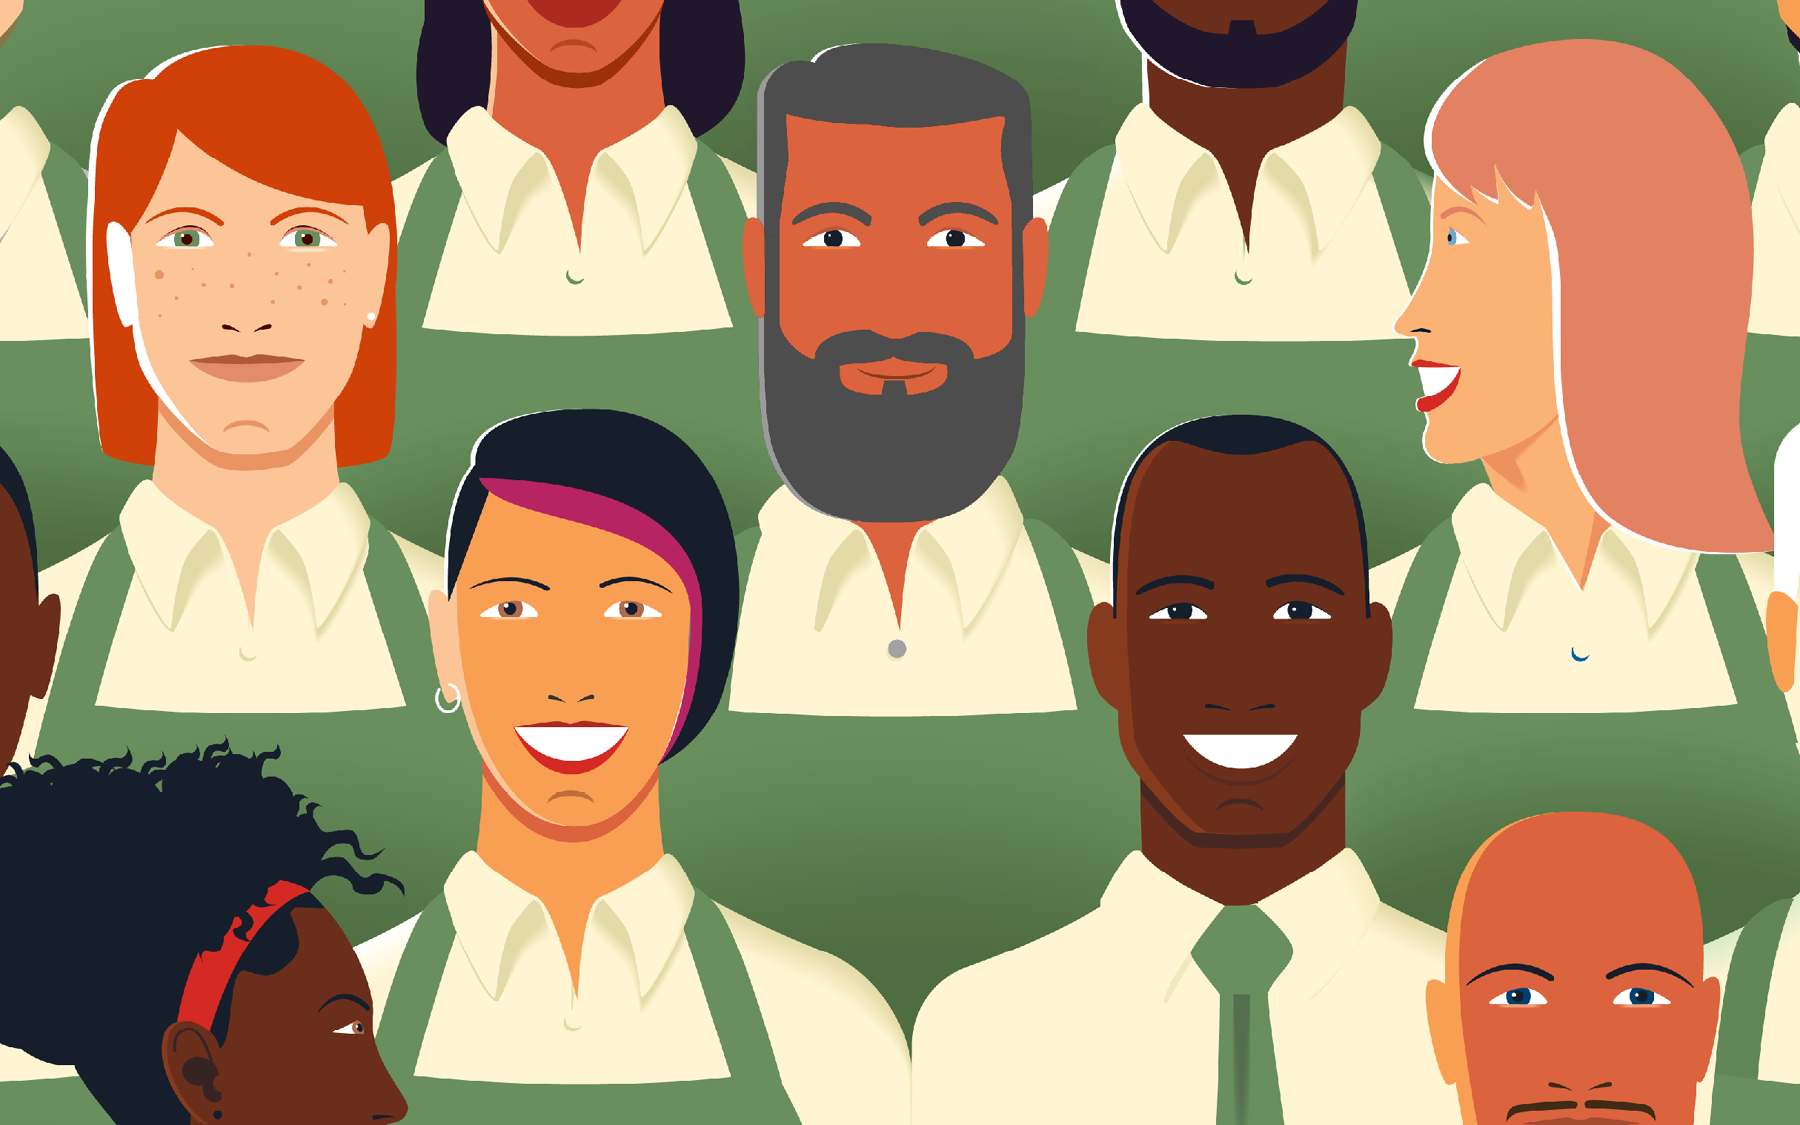 Grocery store workers illustration